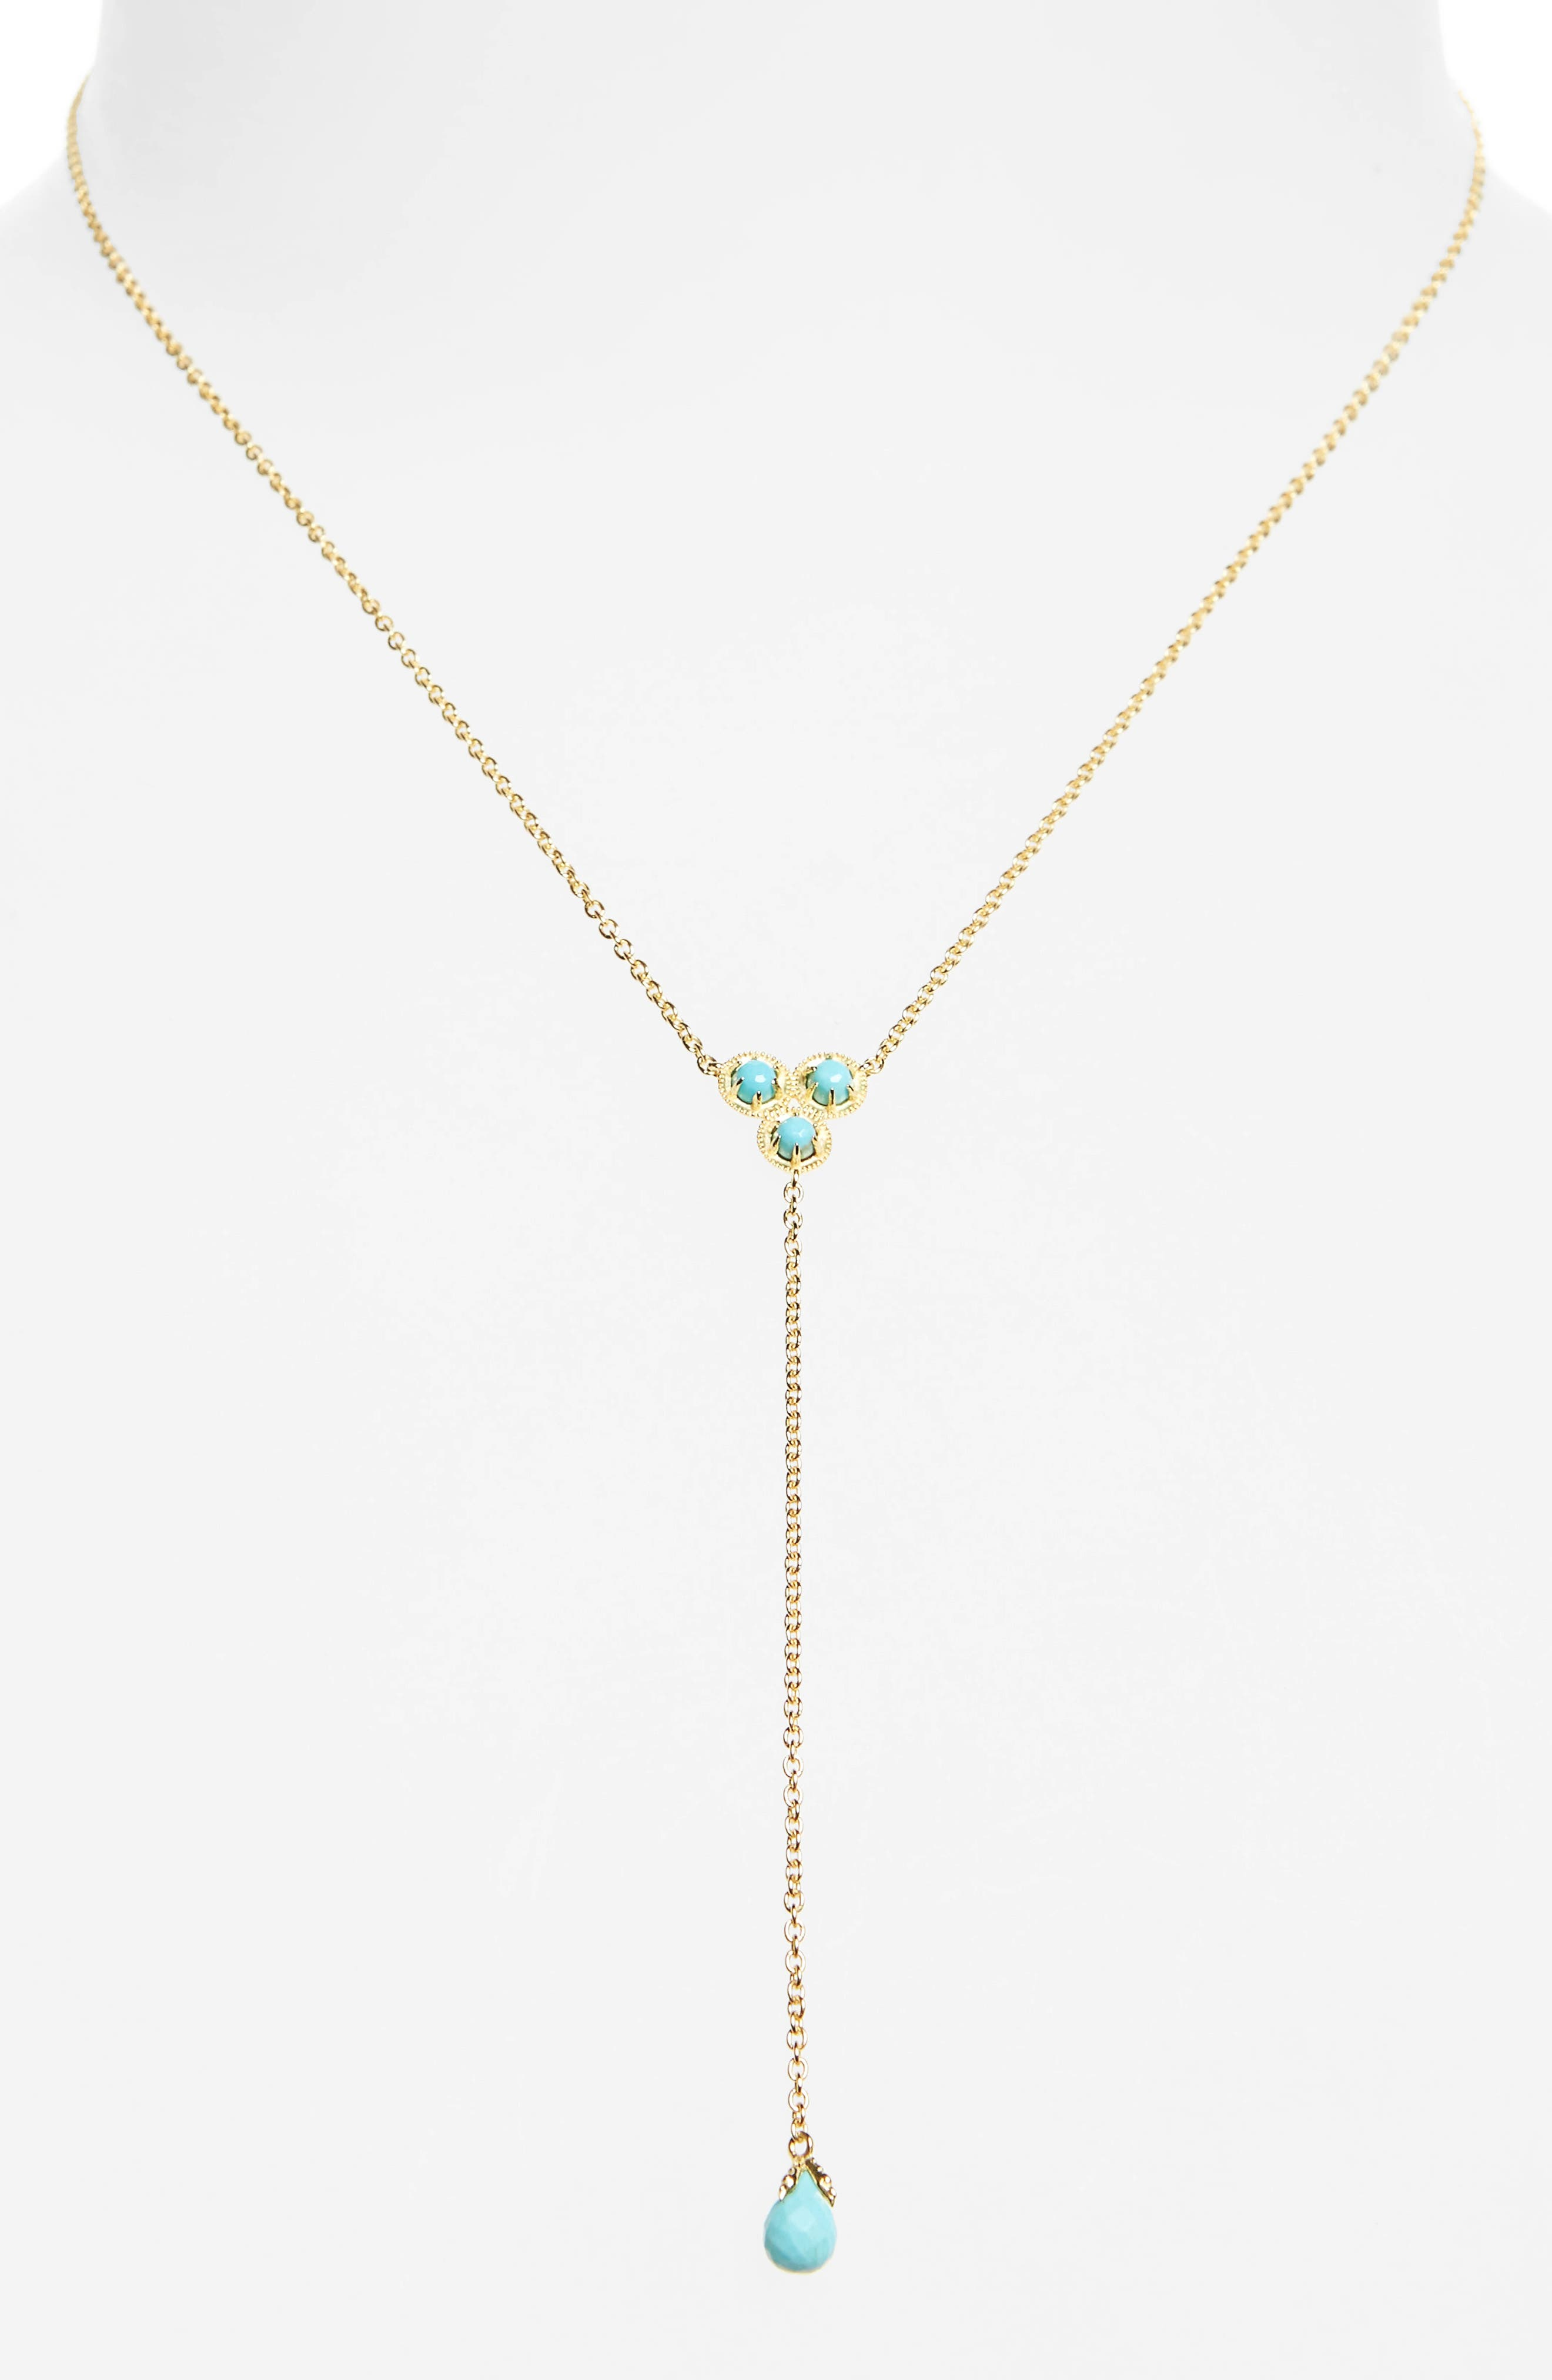 Cleo Semiprecious Stone Necklace,                         Main,                         color, Turquoise/ Gold